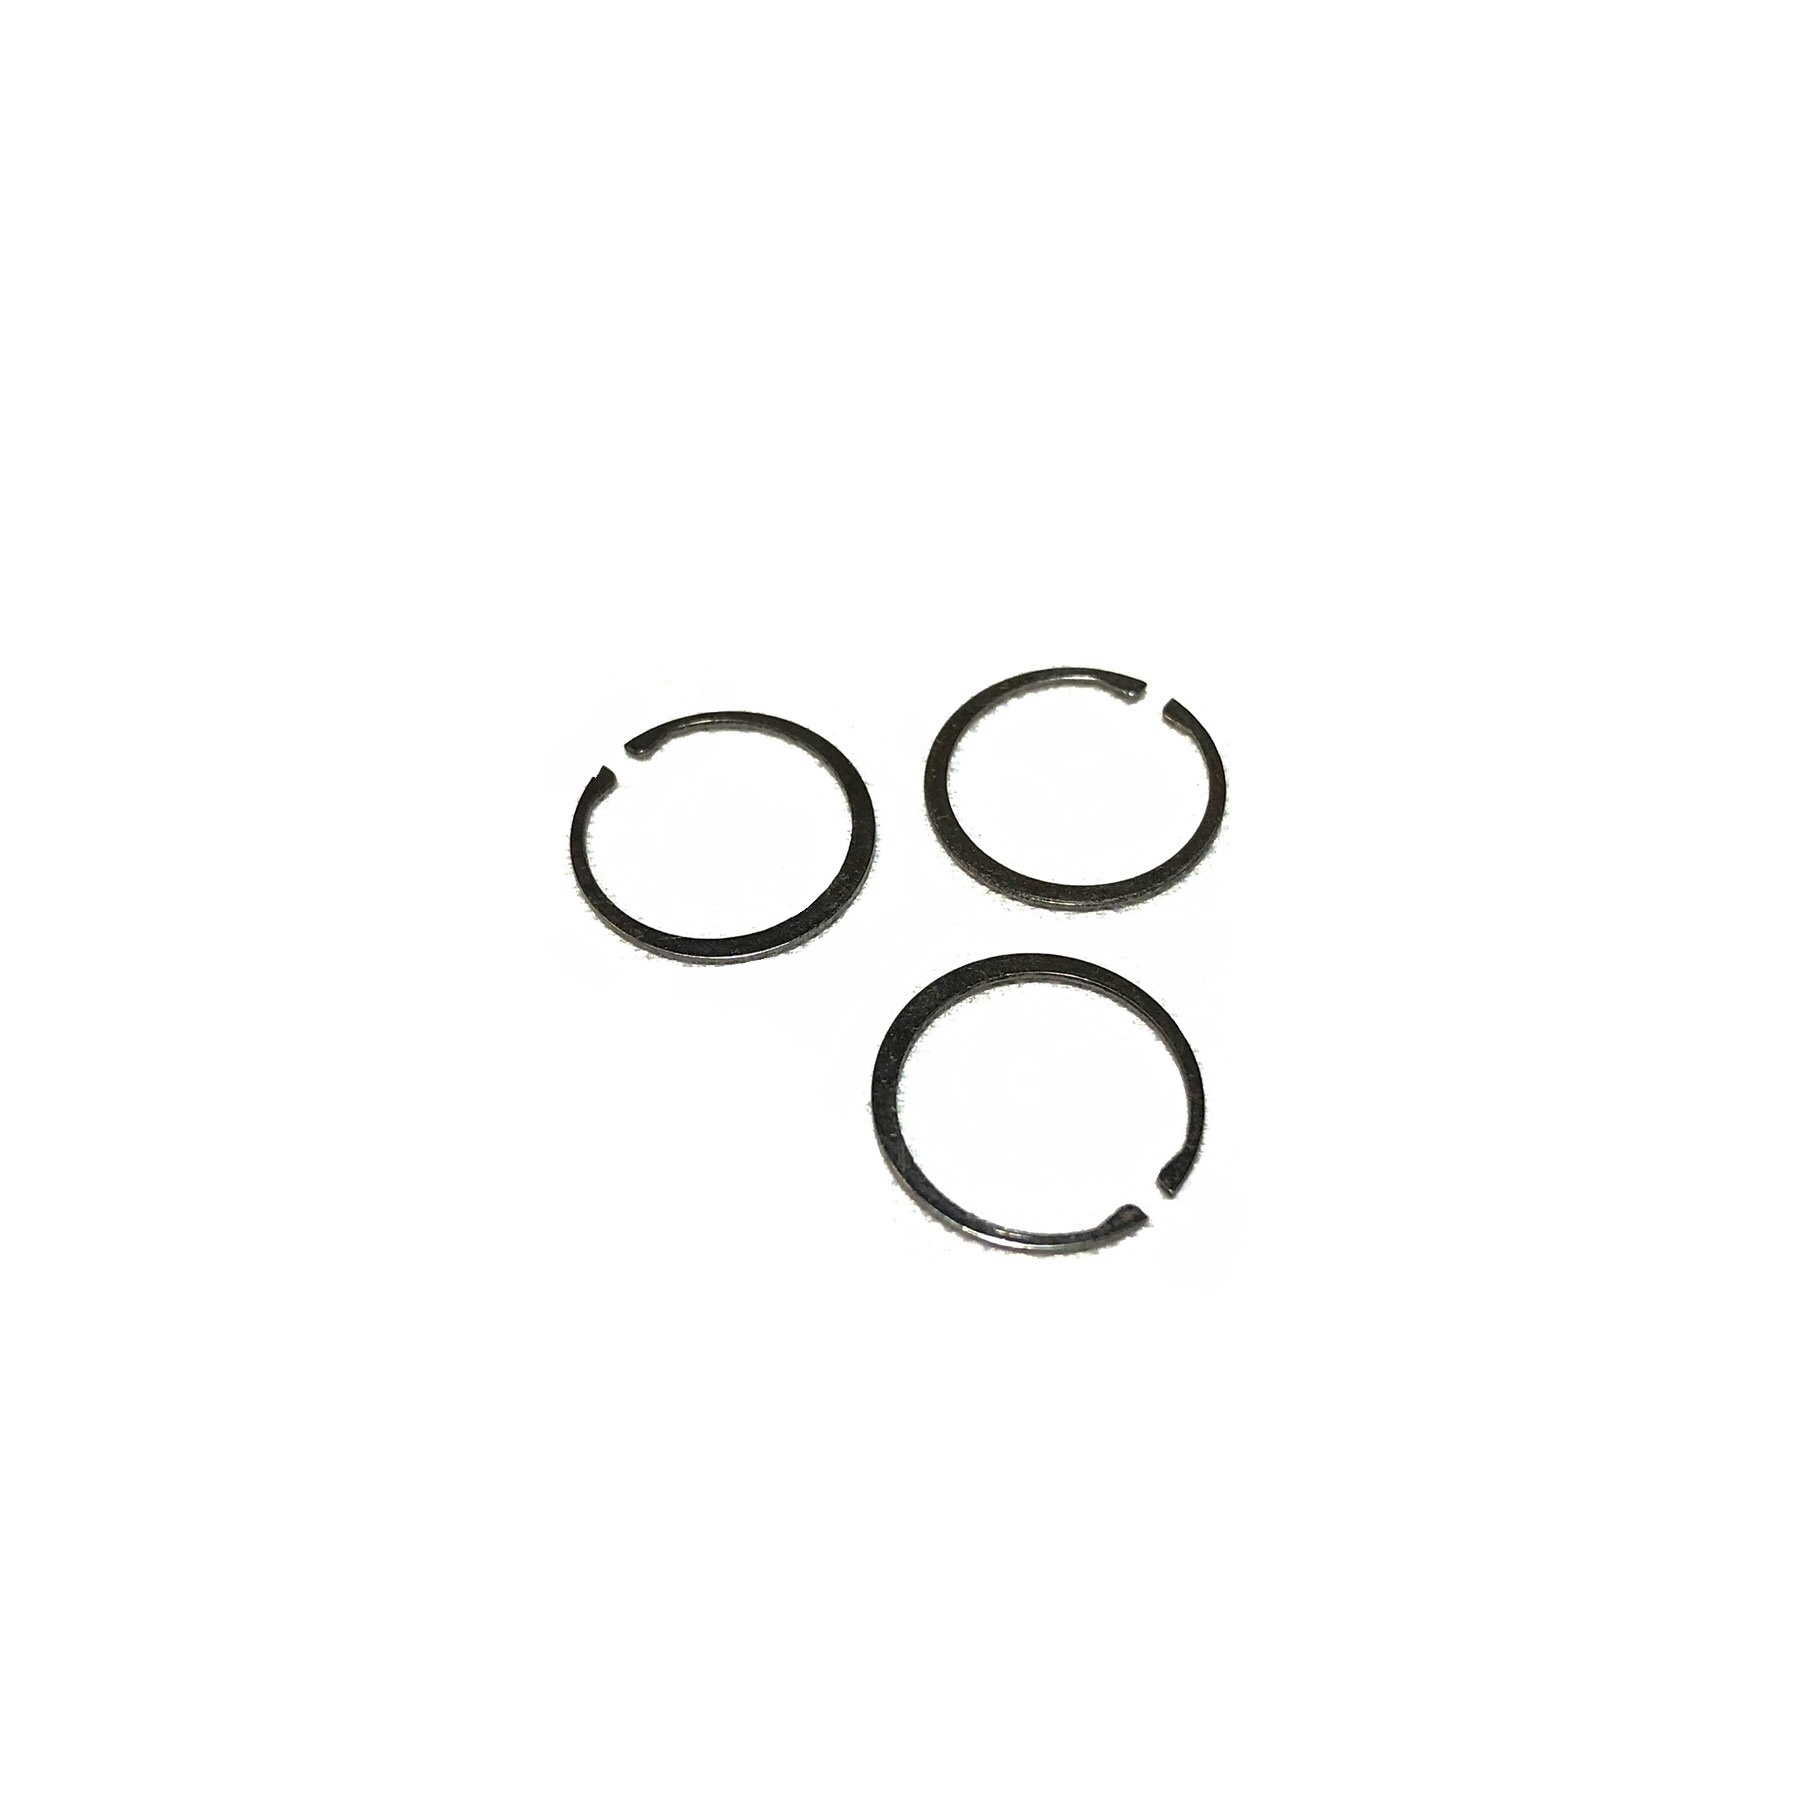 BLACK LABEL ARMORY GAS RINGS (3pk)